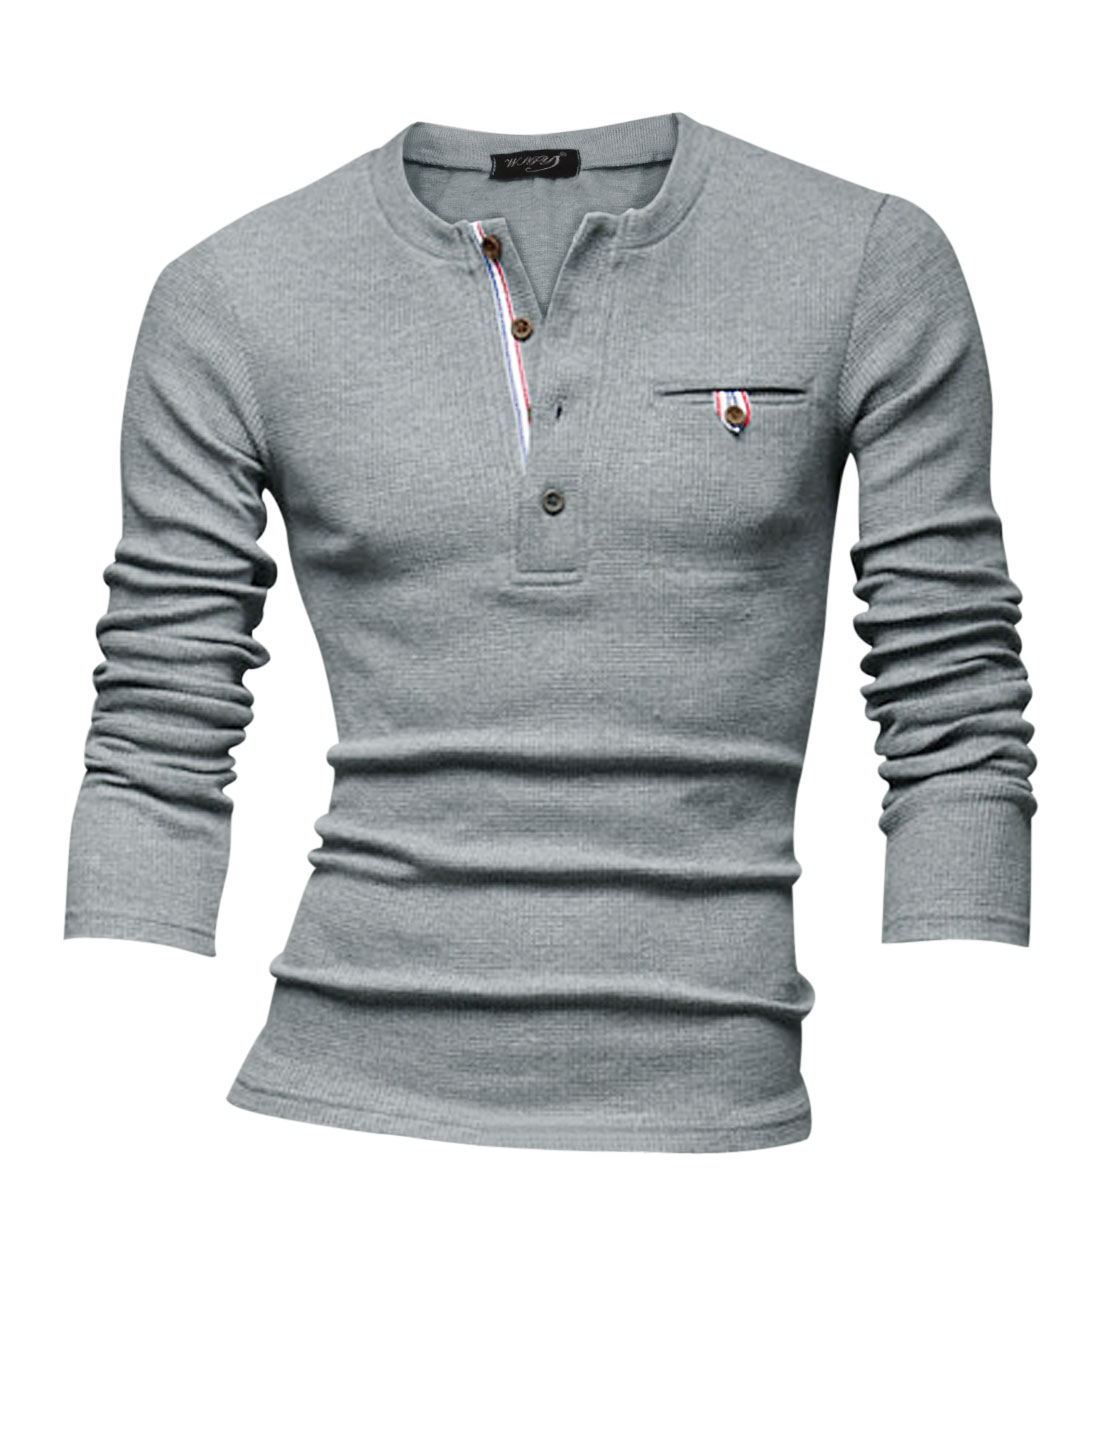 Men Round Neck Mock Pocket Design Casual Henley Sweatshirt Light Gray M